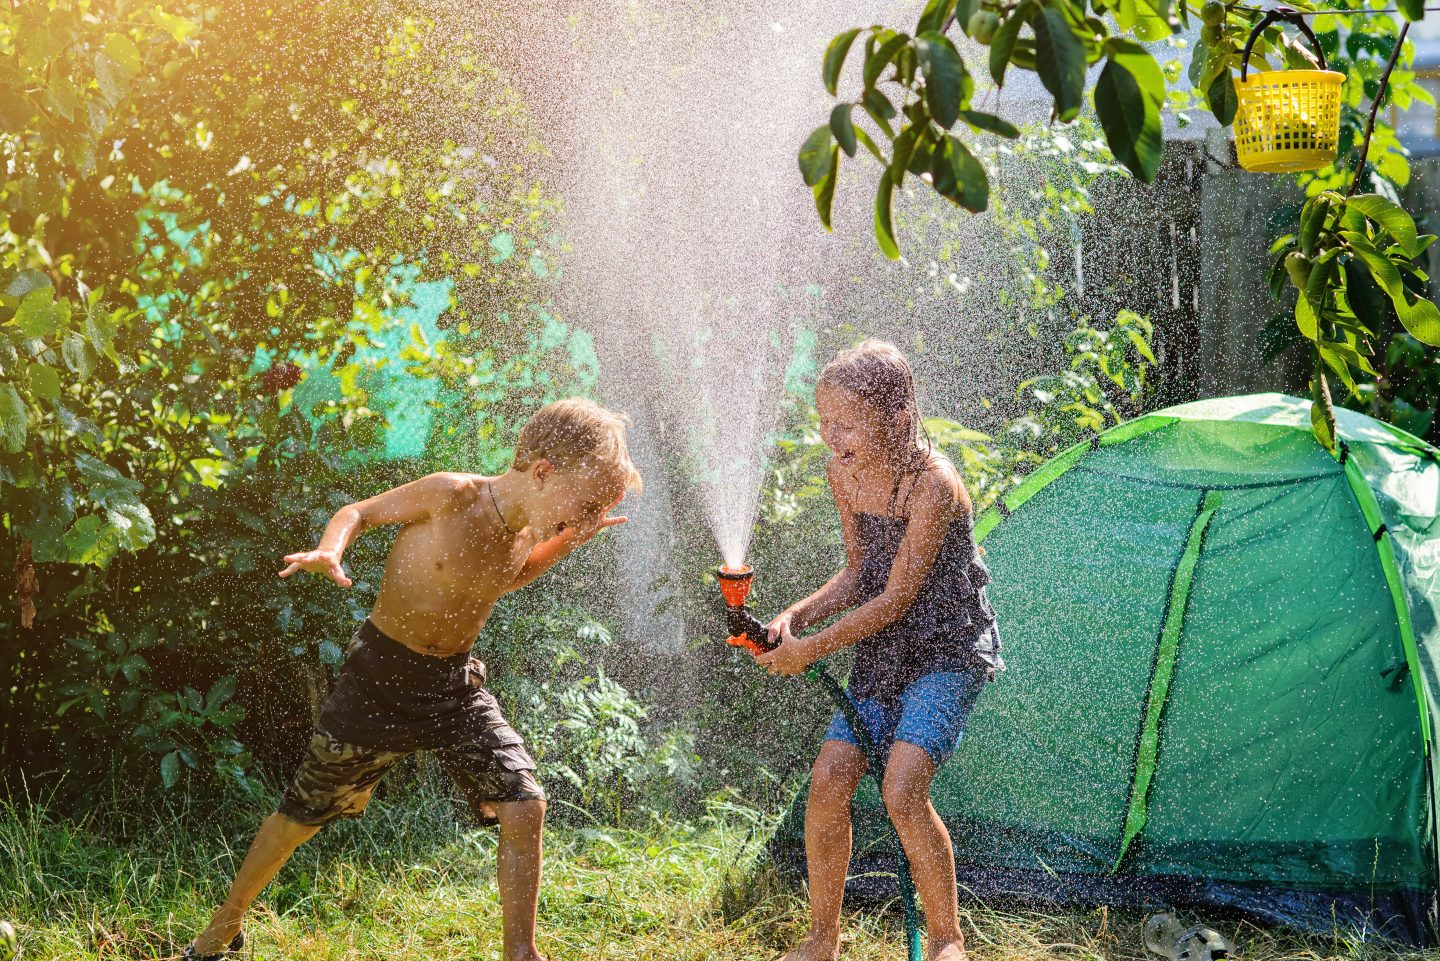 children playing with water in garden with tent